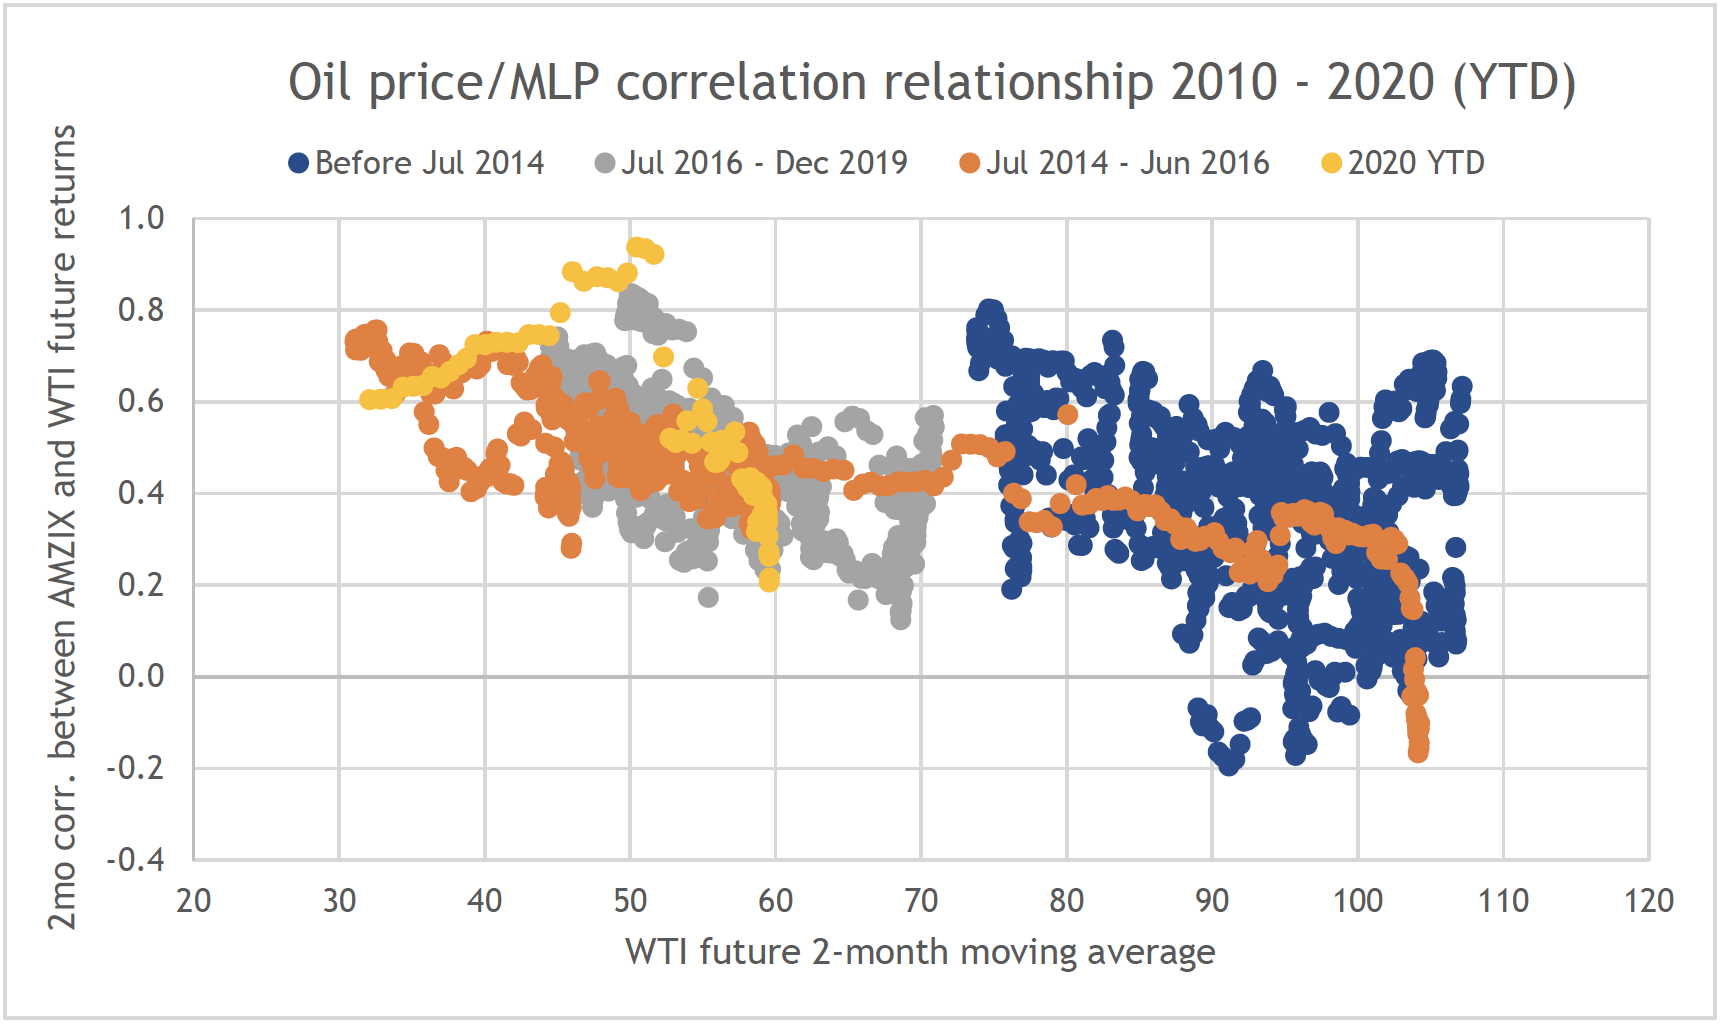 Correlation between MLPs and Oil